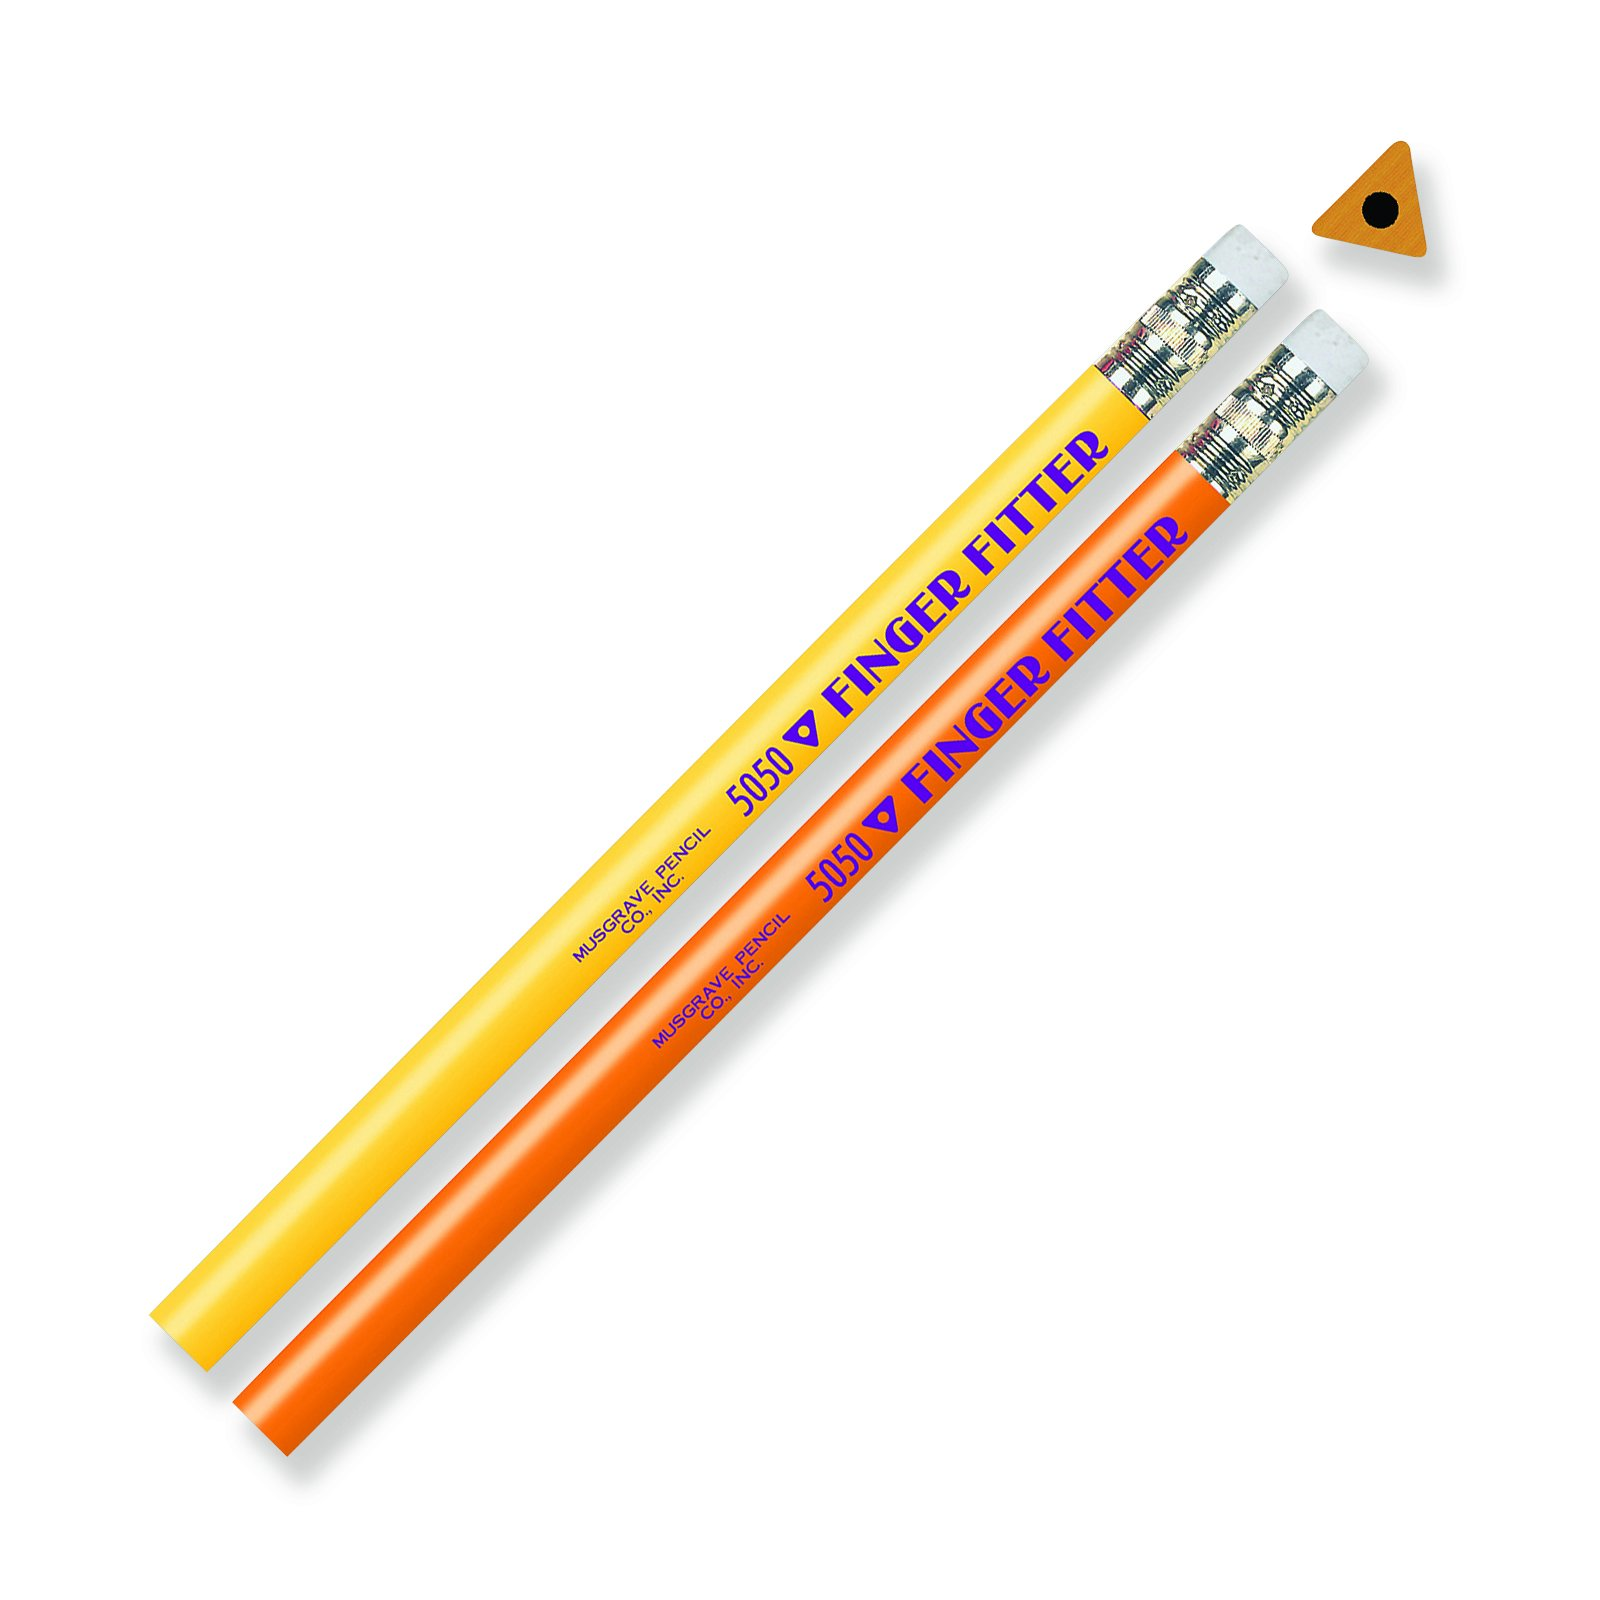 Musgrave Pencil Company MUS5050TBN Finger Fitter Pencils, 12 Per Pack, 6 Packs